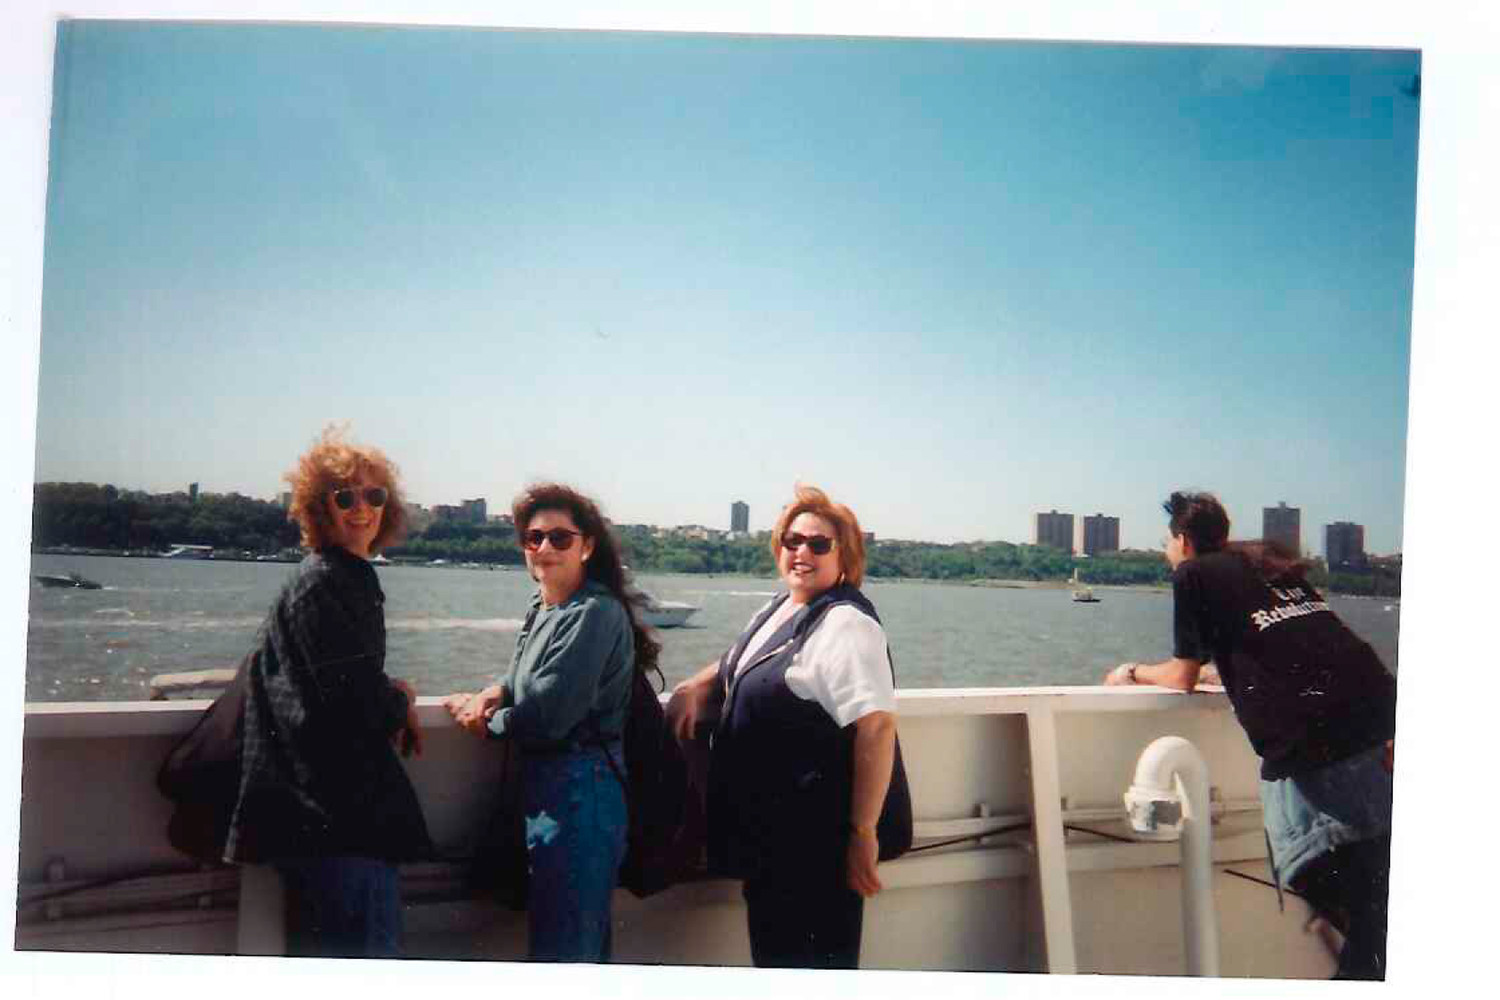 The photo taken on the boat cruise around NYC, was not claimed yet. If you think you know who is pictured, send us a tip.